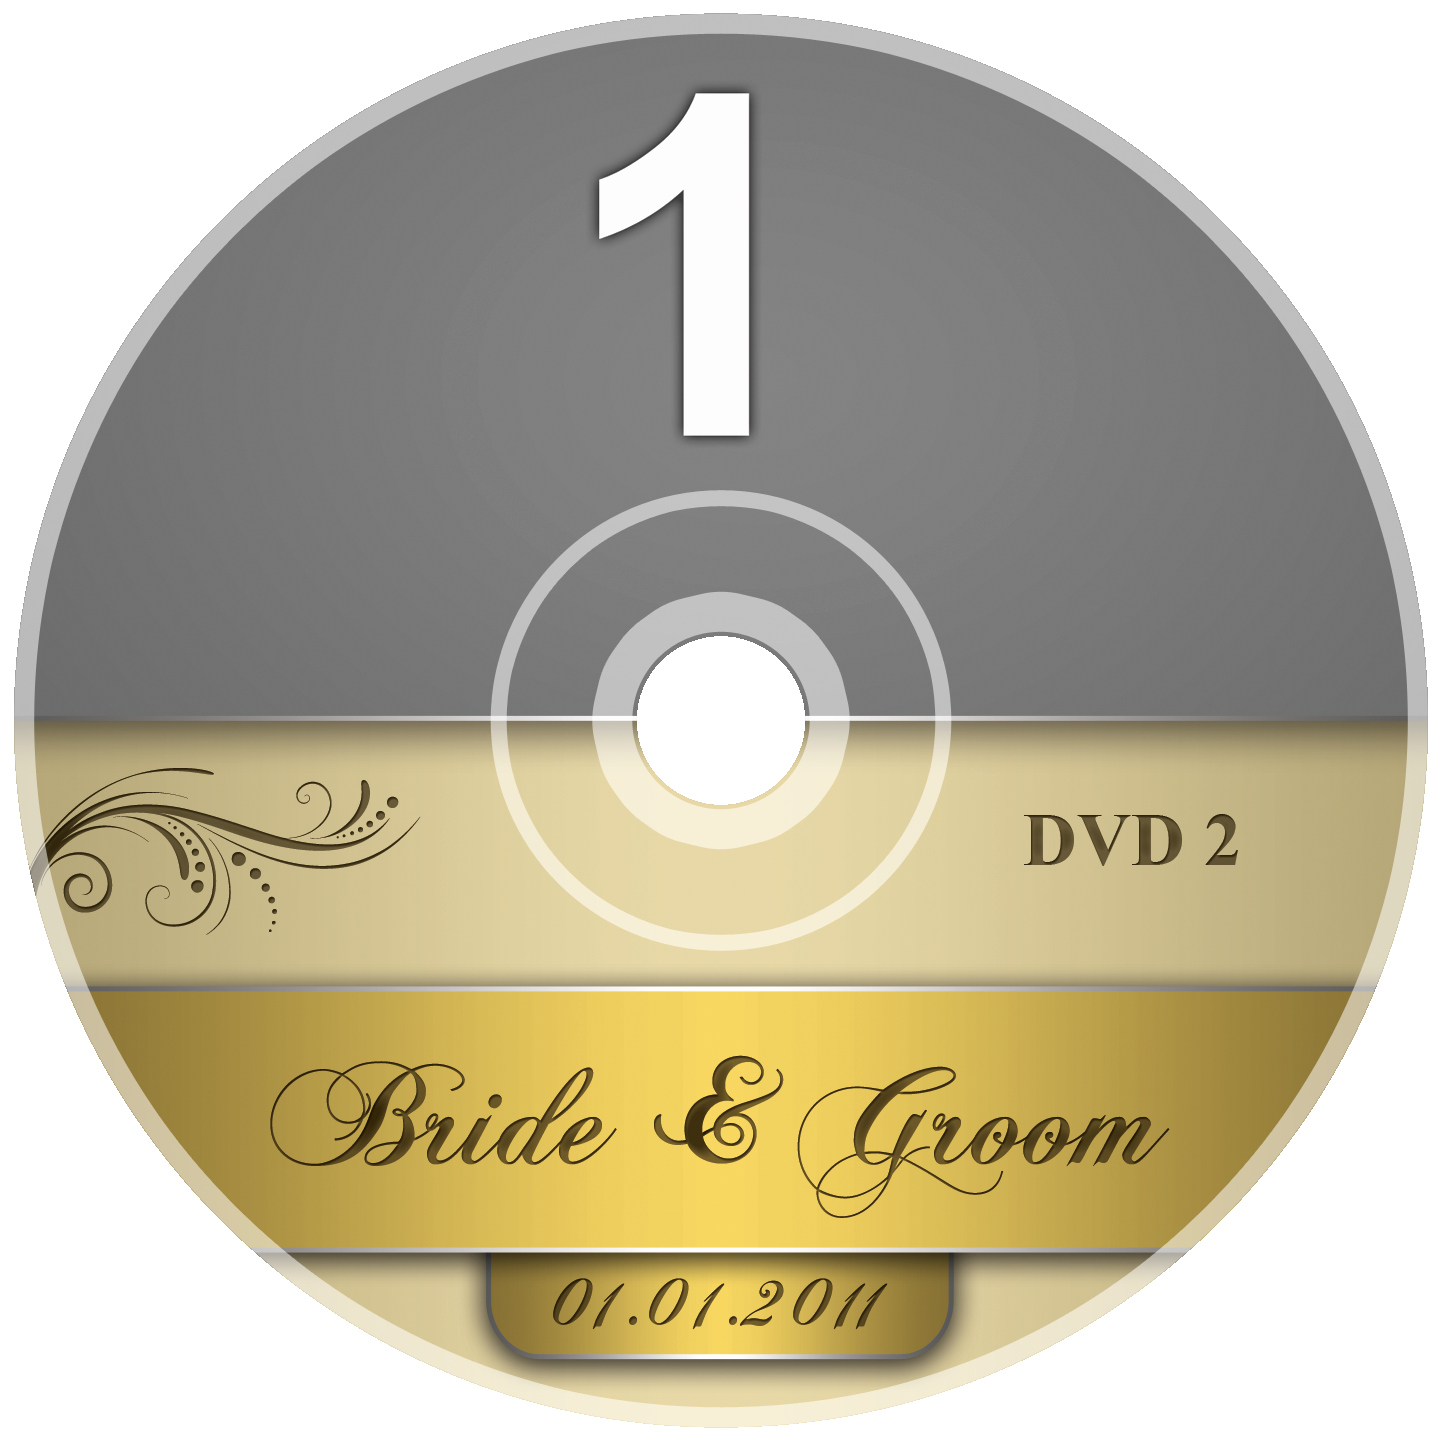 Cd Label Template Photoshop Inspirational Dvd Label Template Psd